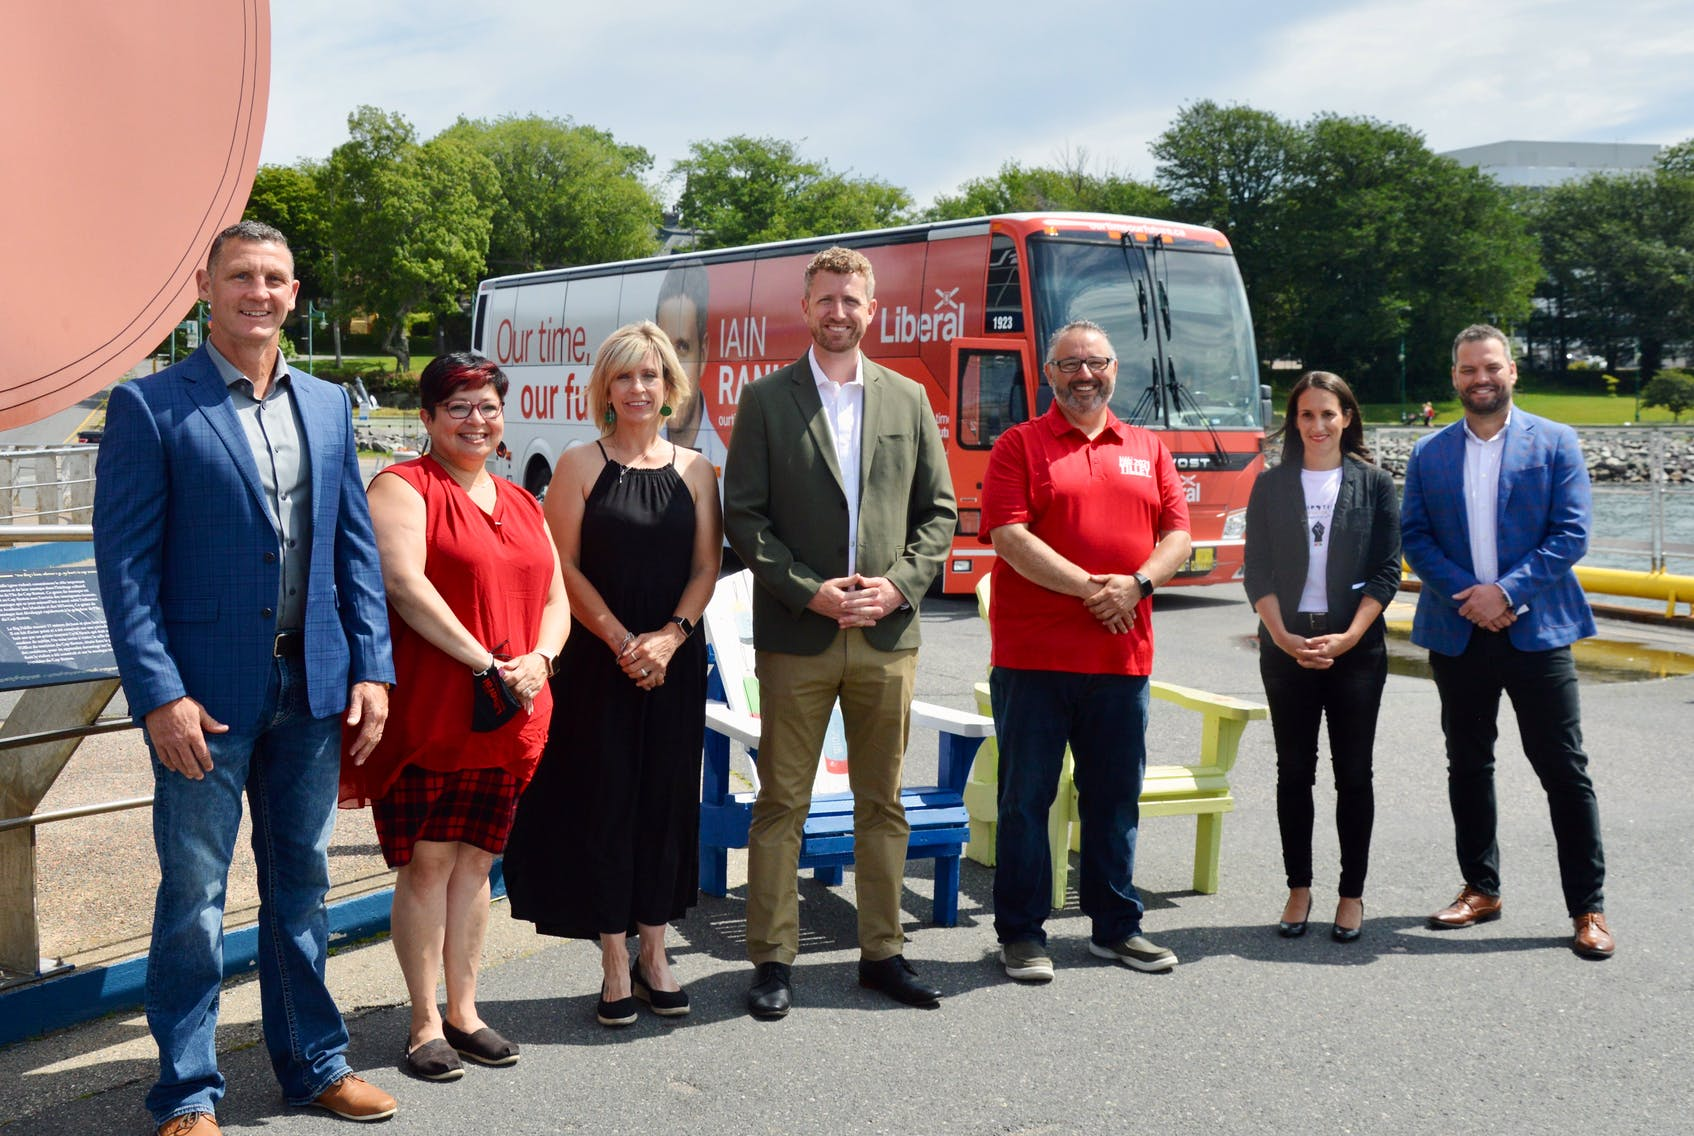 The Nova Scotia Liberal Party campaign train made a Sunday morning stop on the Sydney waterfront where Premier Iain Rankin, who arrived in a specially wrapped, election-themed tour coach, was joined by six of his party's Cape Breton candidates for the unveiling of his new skills and training platform that features a $78-million investment in the Nova Scotia Community College. From left: John John McCarthy (Glace Bay- Dominion), Nadine Bernard (Victoria-The Lakes), Heather Peters (Cape Breton East), Rankin, Fred Tilley (Northside-Westmount), Michelle Wilson (Cape Breton Centre-Whitney Pier) and Education Minister Derek Mombourquette (Sydney-Membertou). DAVID JALA/CAPE BRETON POST